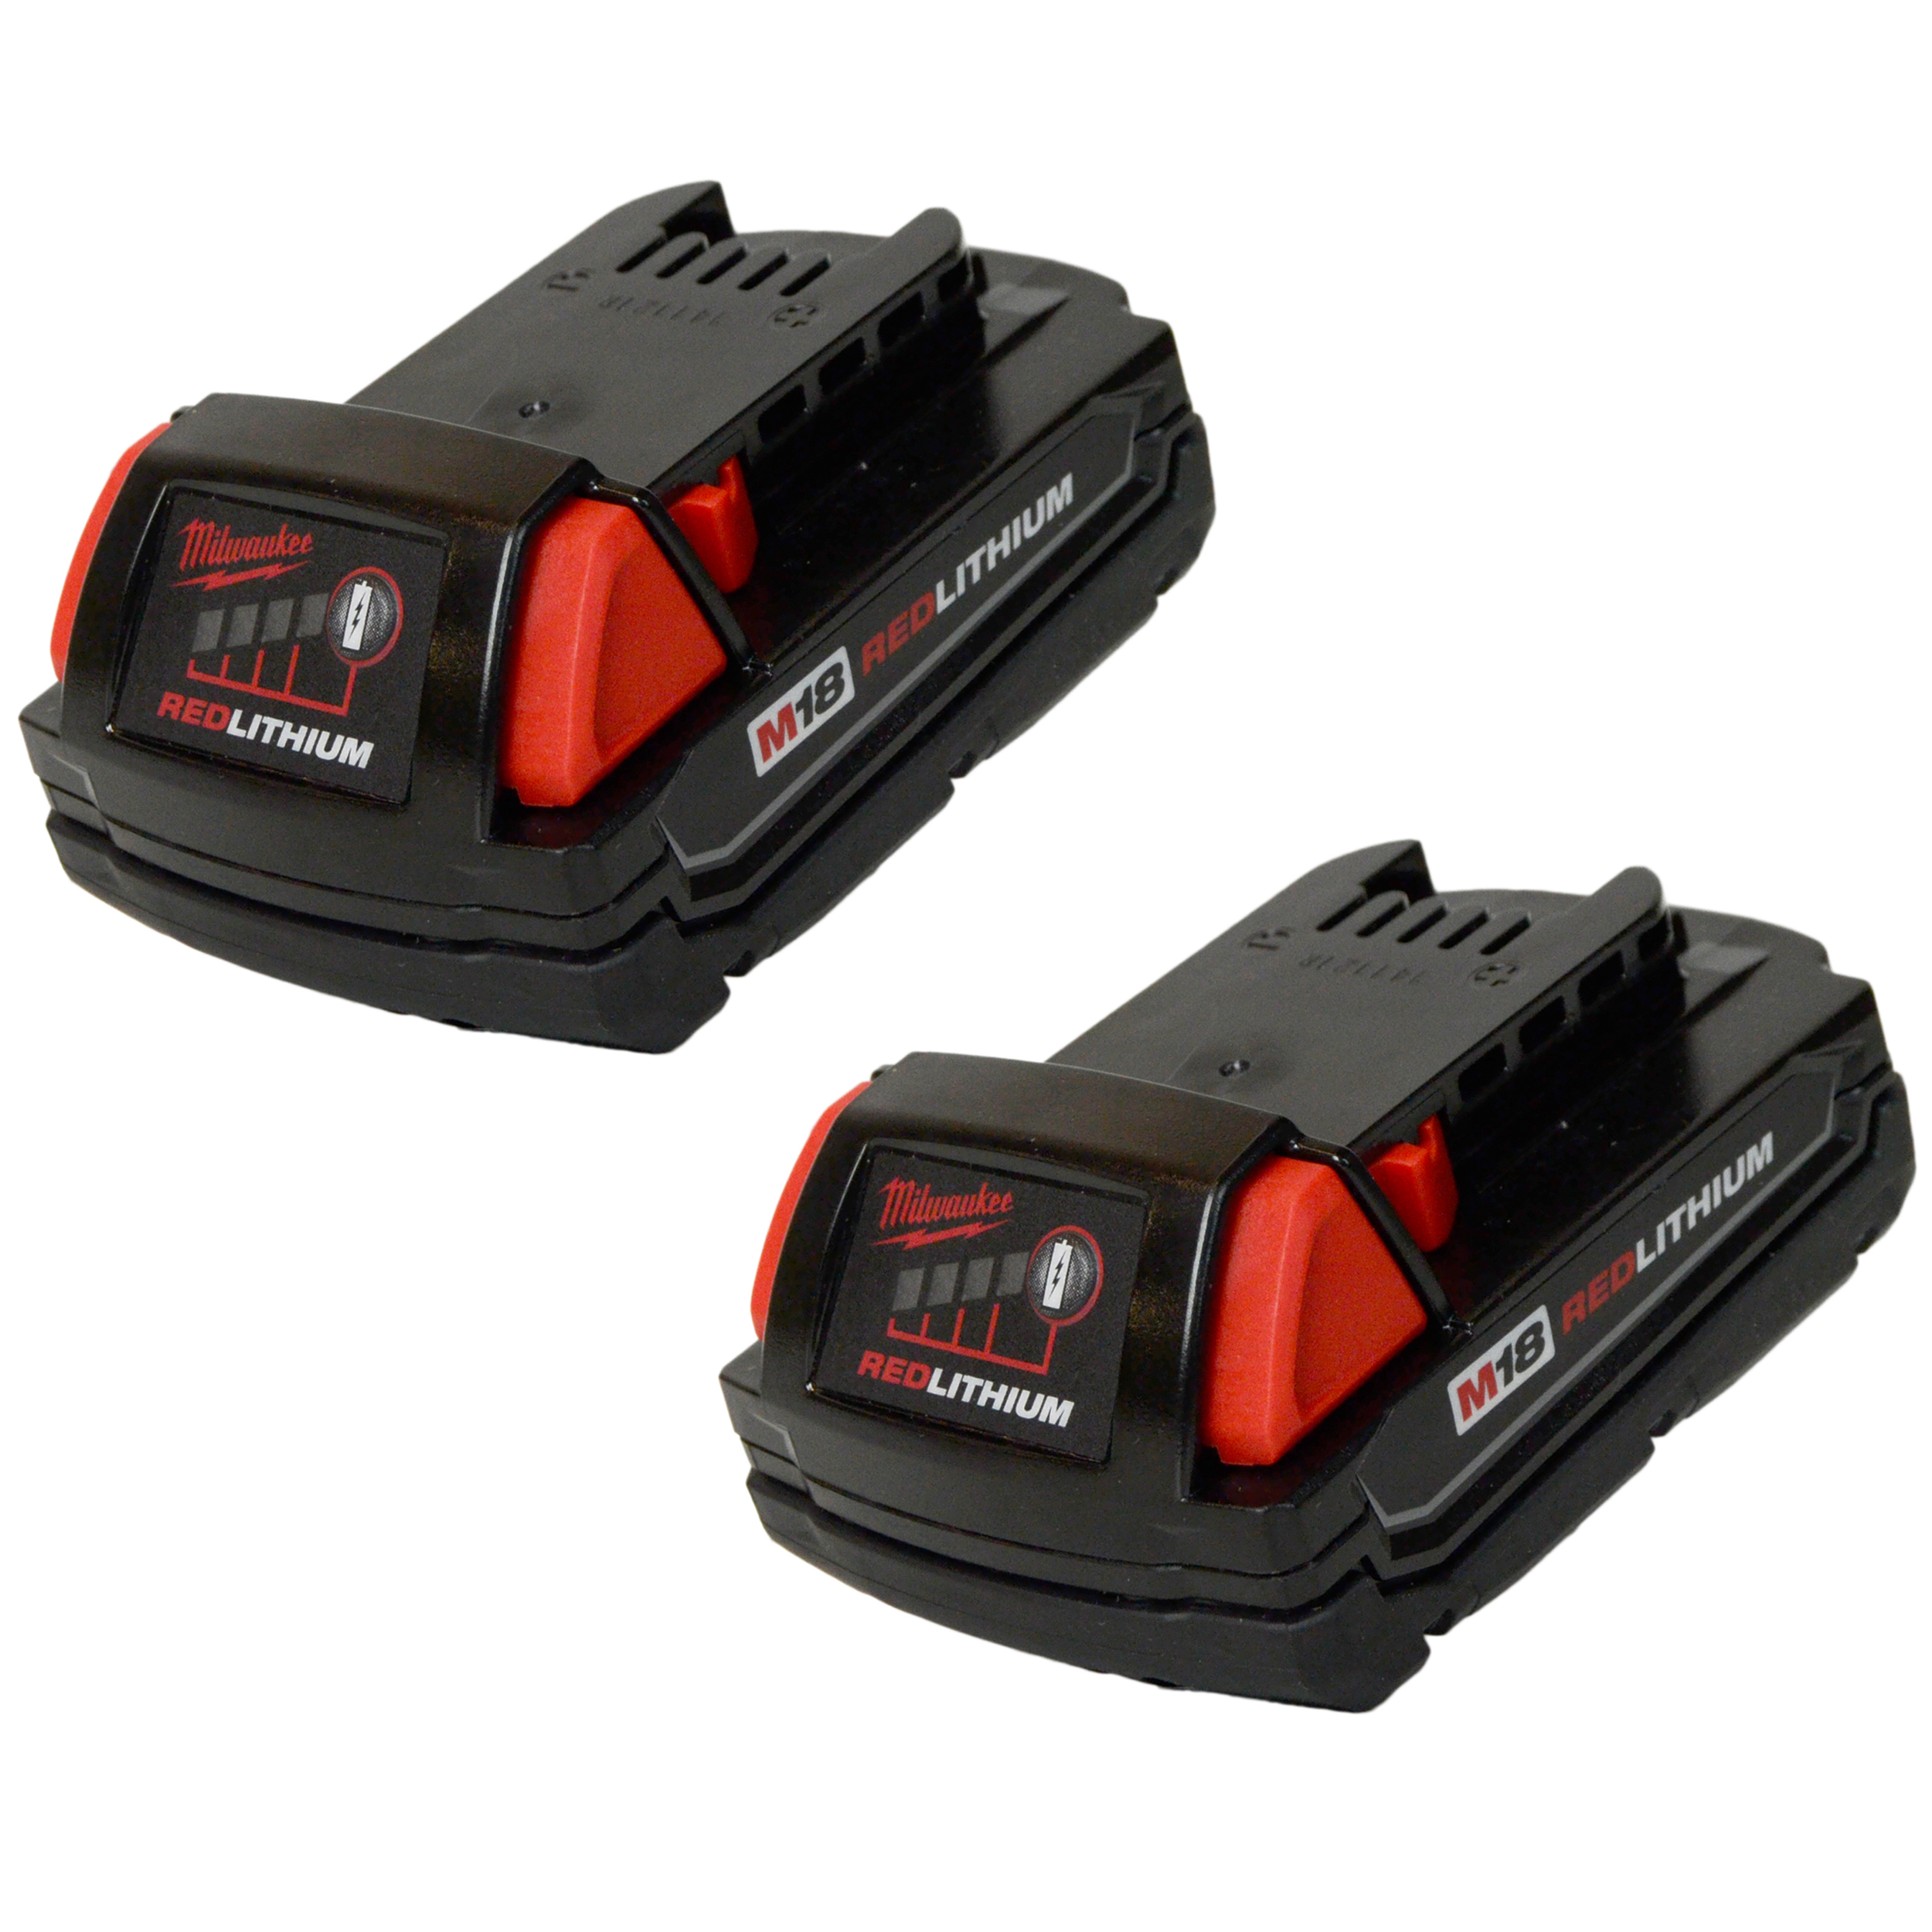 Milwaukee Tools 48-11-1815 18V M18 Compact RedLithium Rechargeable Battery (2-Pack)